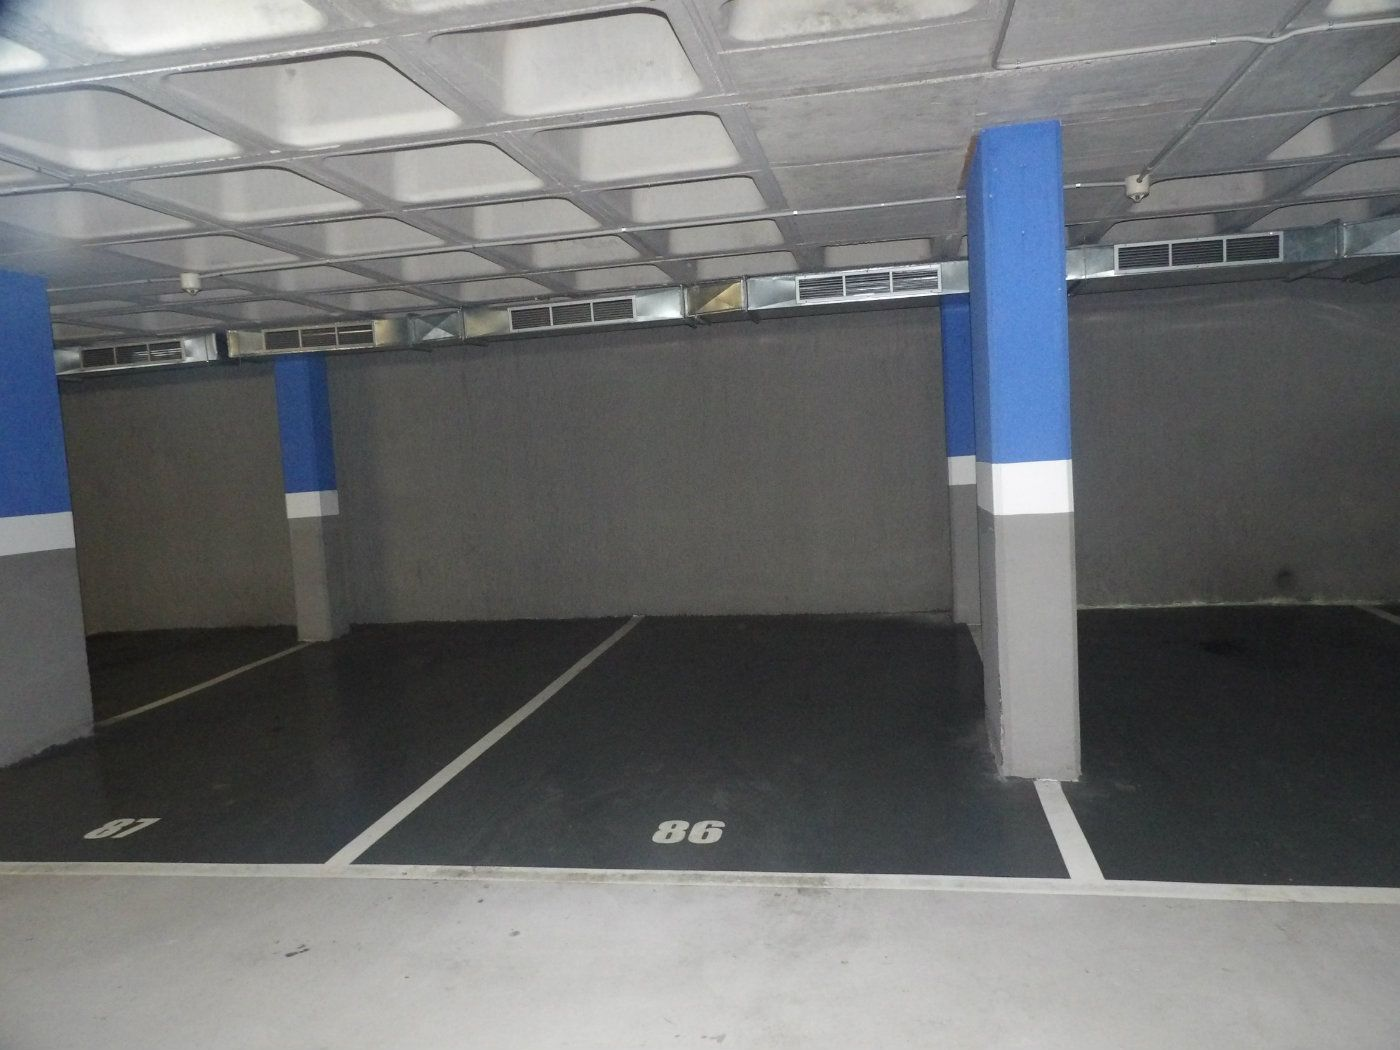 Car parking  Carrer pare sallares. Parking al centre